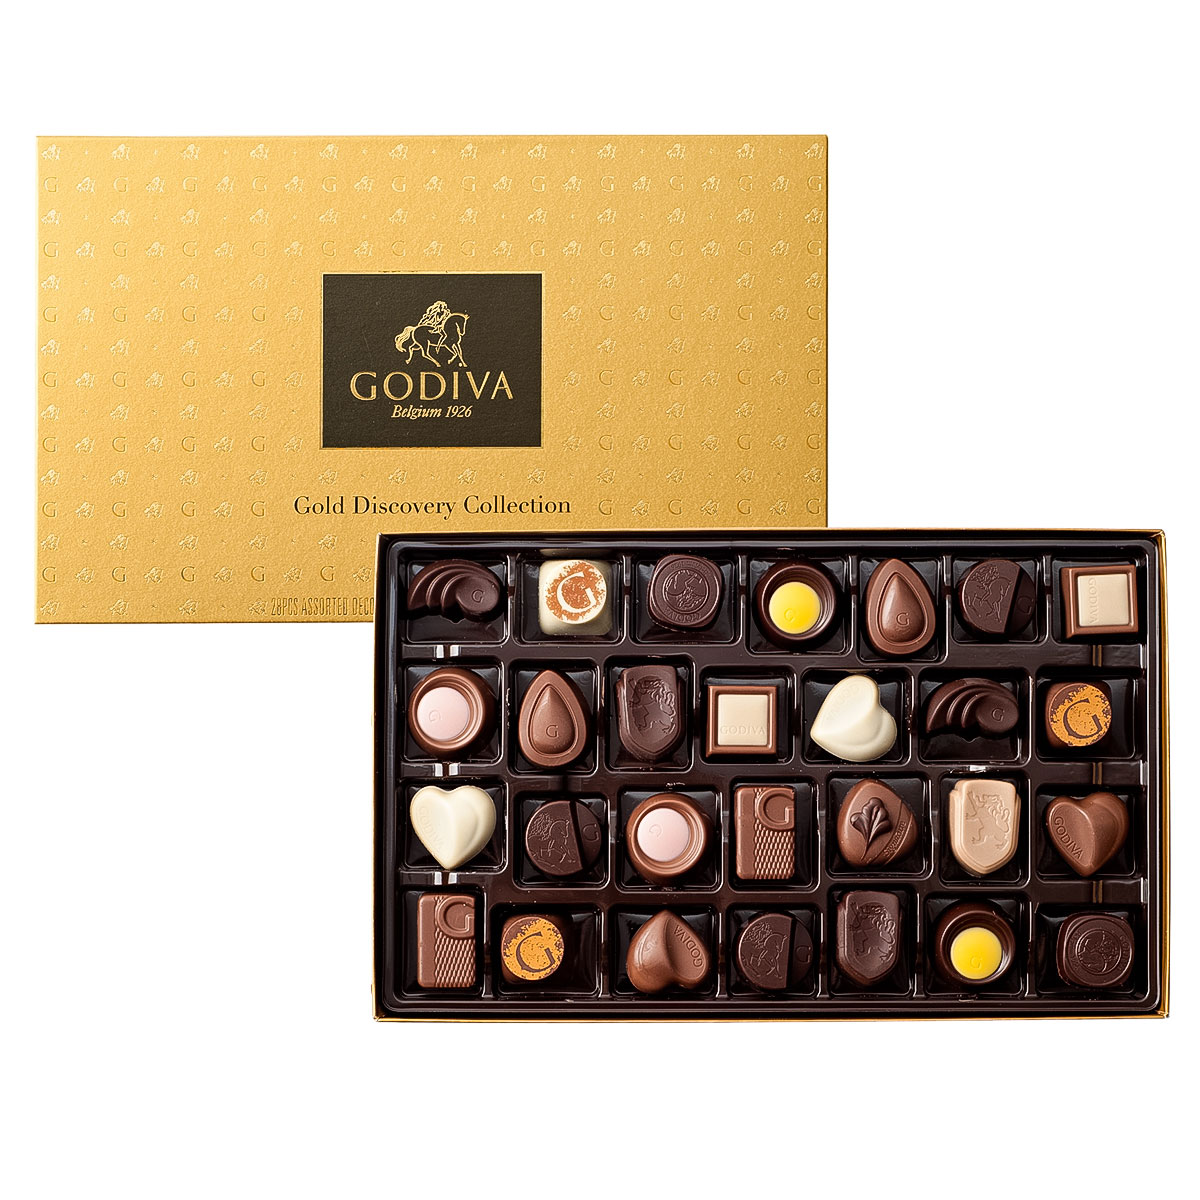 Godiva Gold Discovery Box 28 Pcs Delivery In Europe Others Godiva